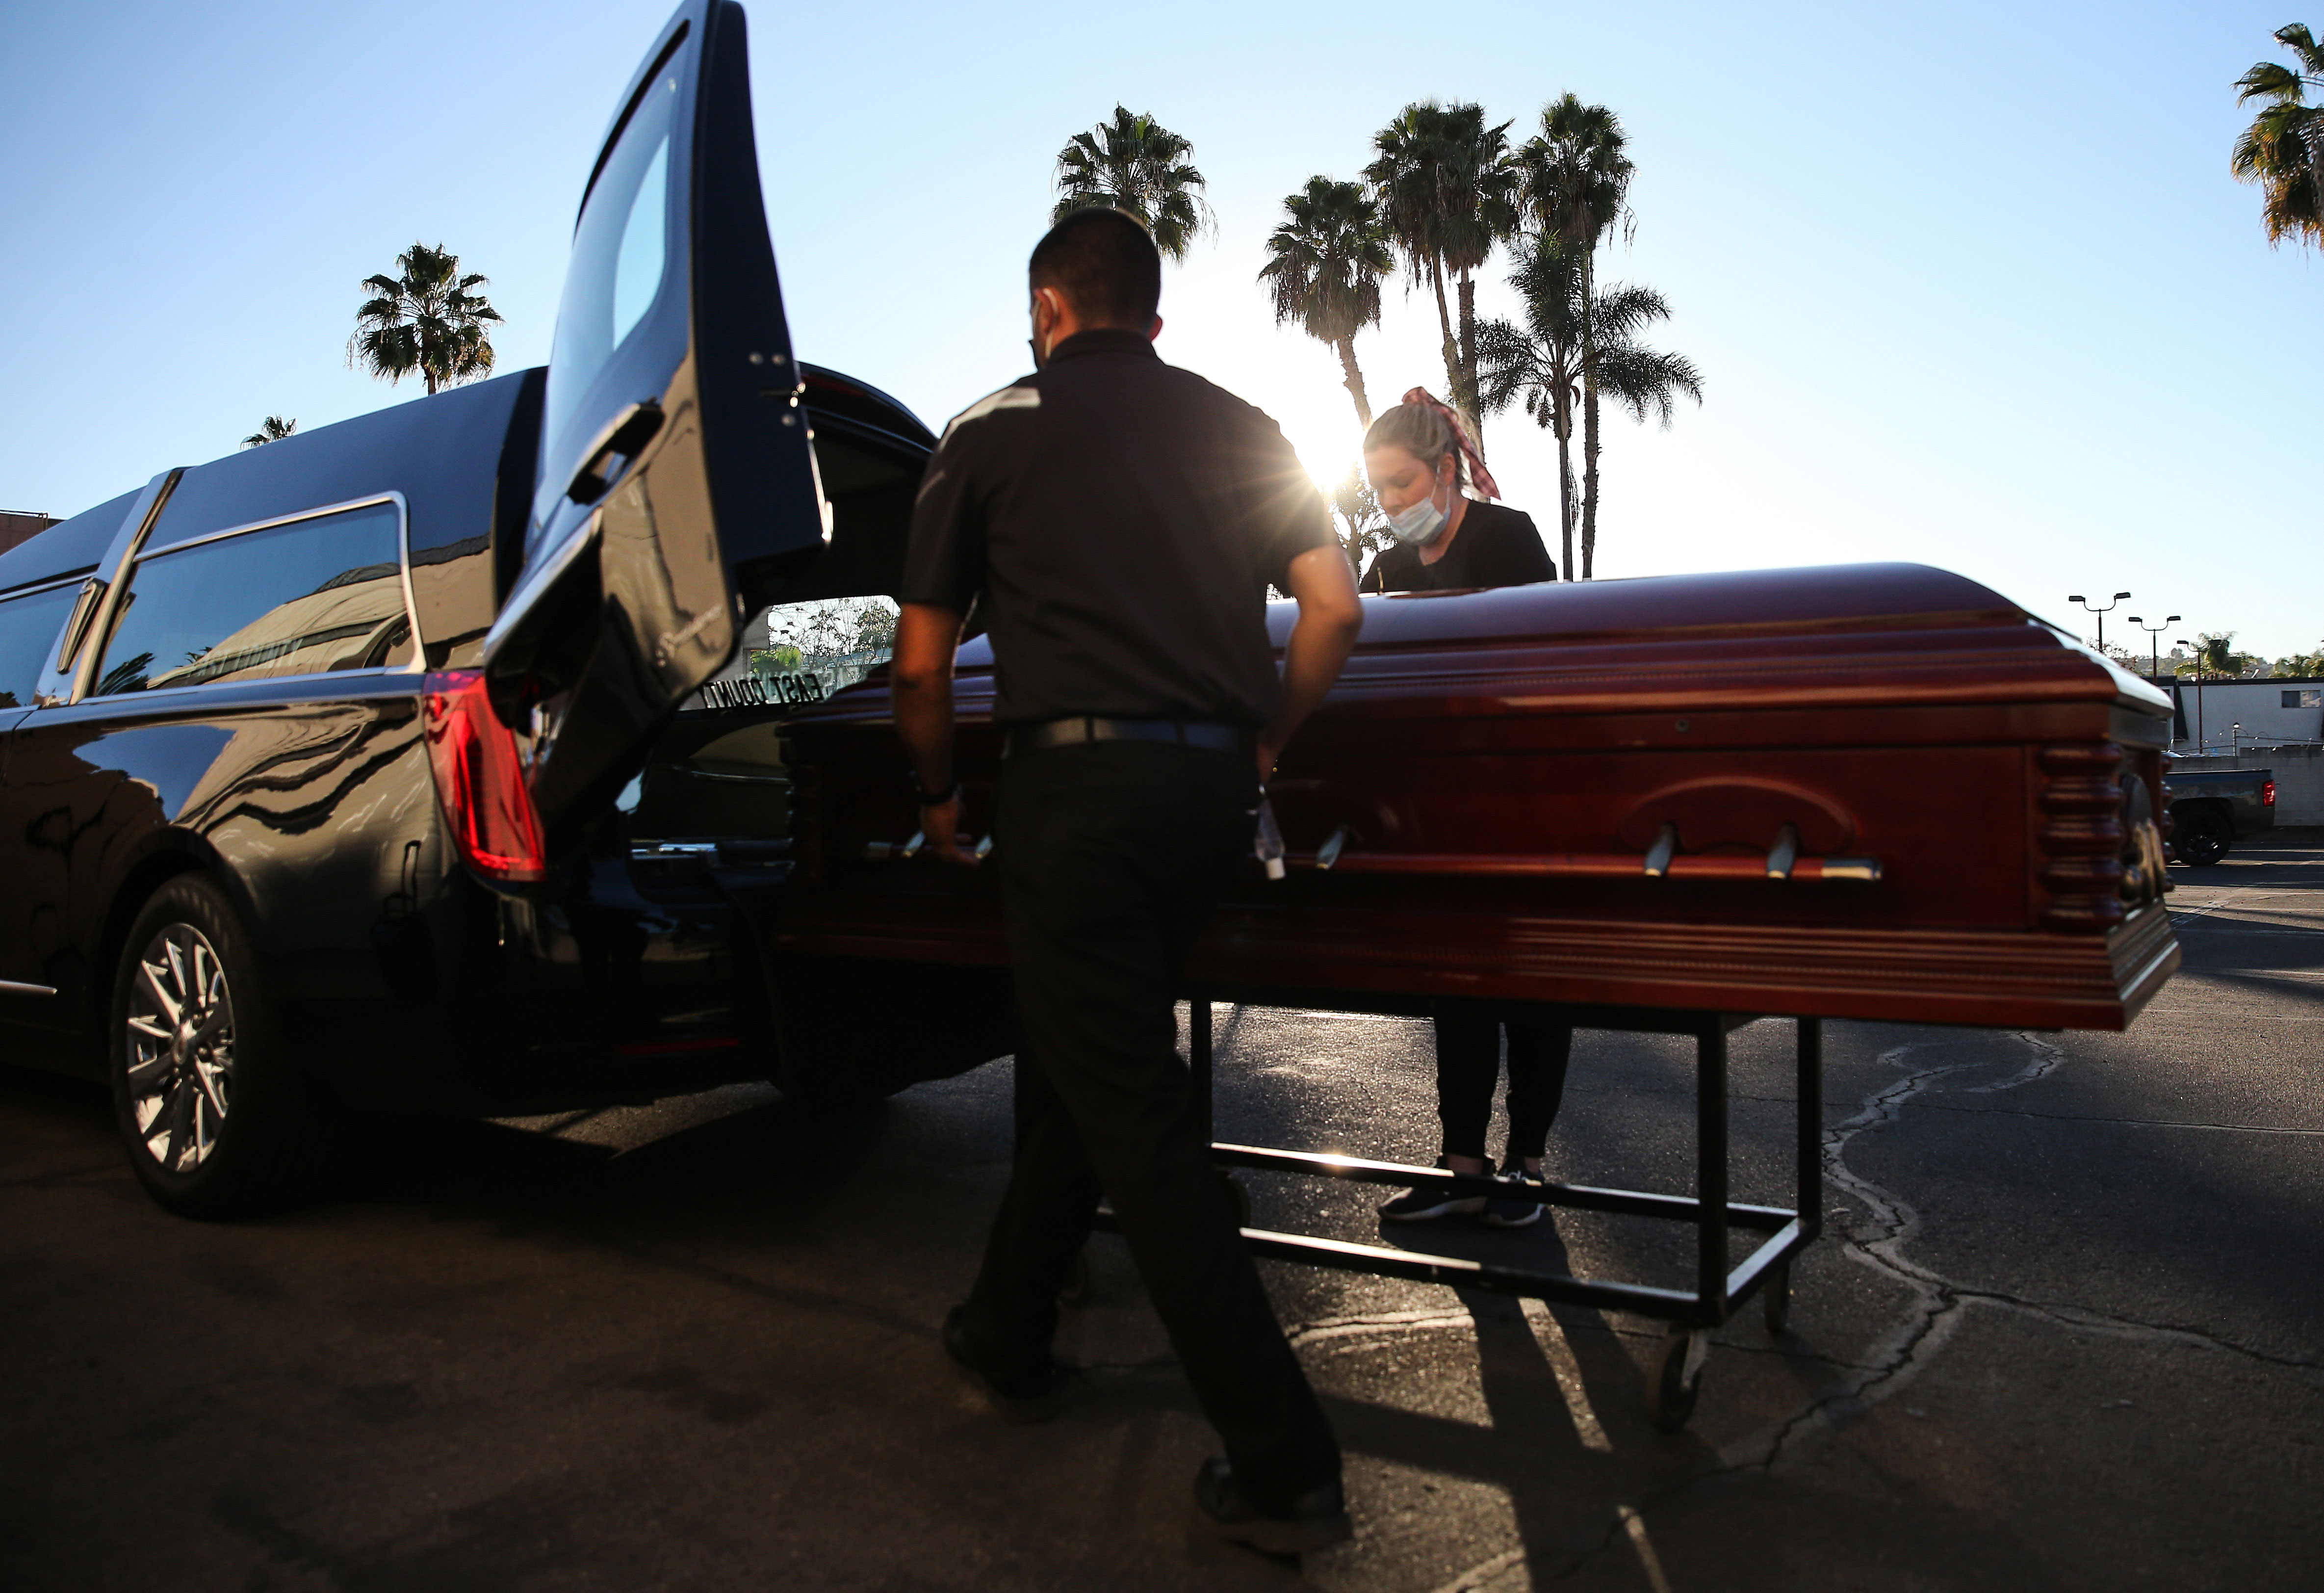 Funeral workers load the casket of a person who died after contracting Covid-19 into a hearse at East County Mortuary in El Cajon, California, on January 15.